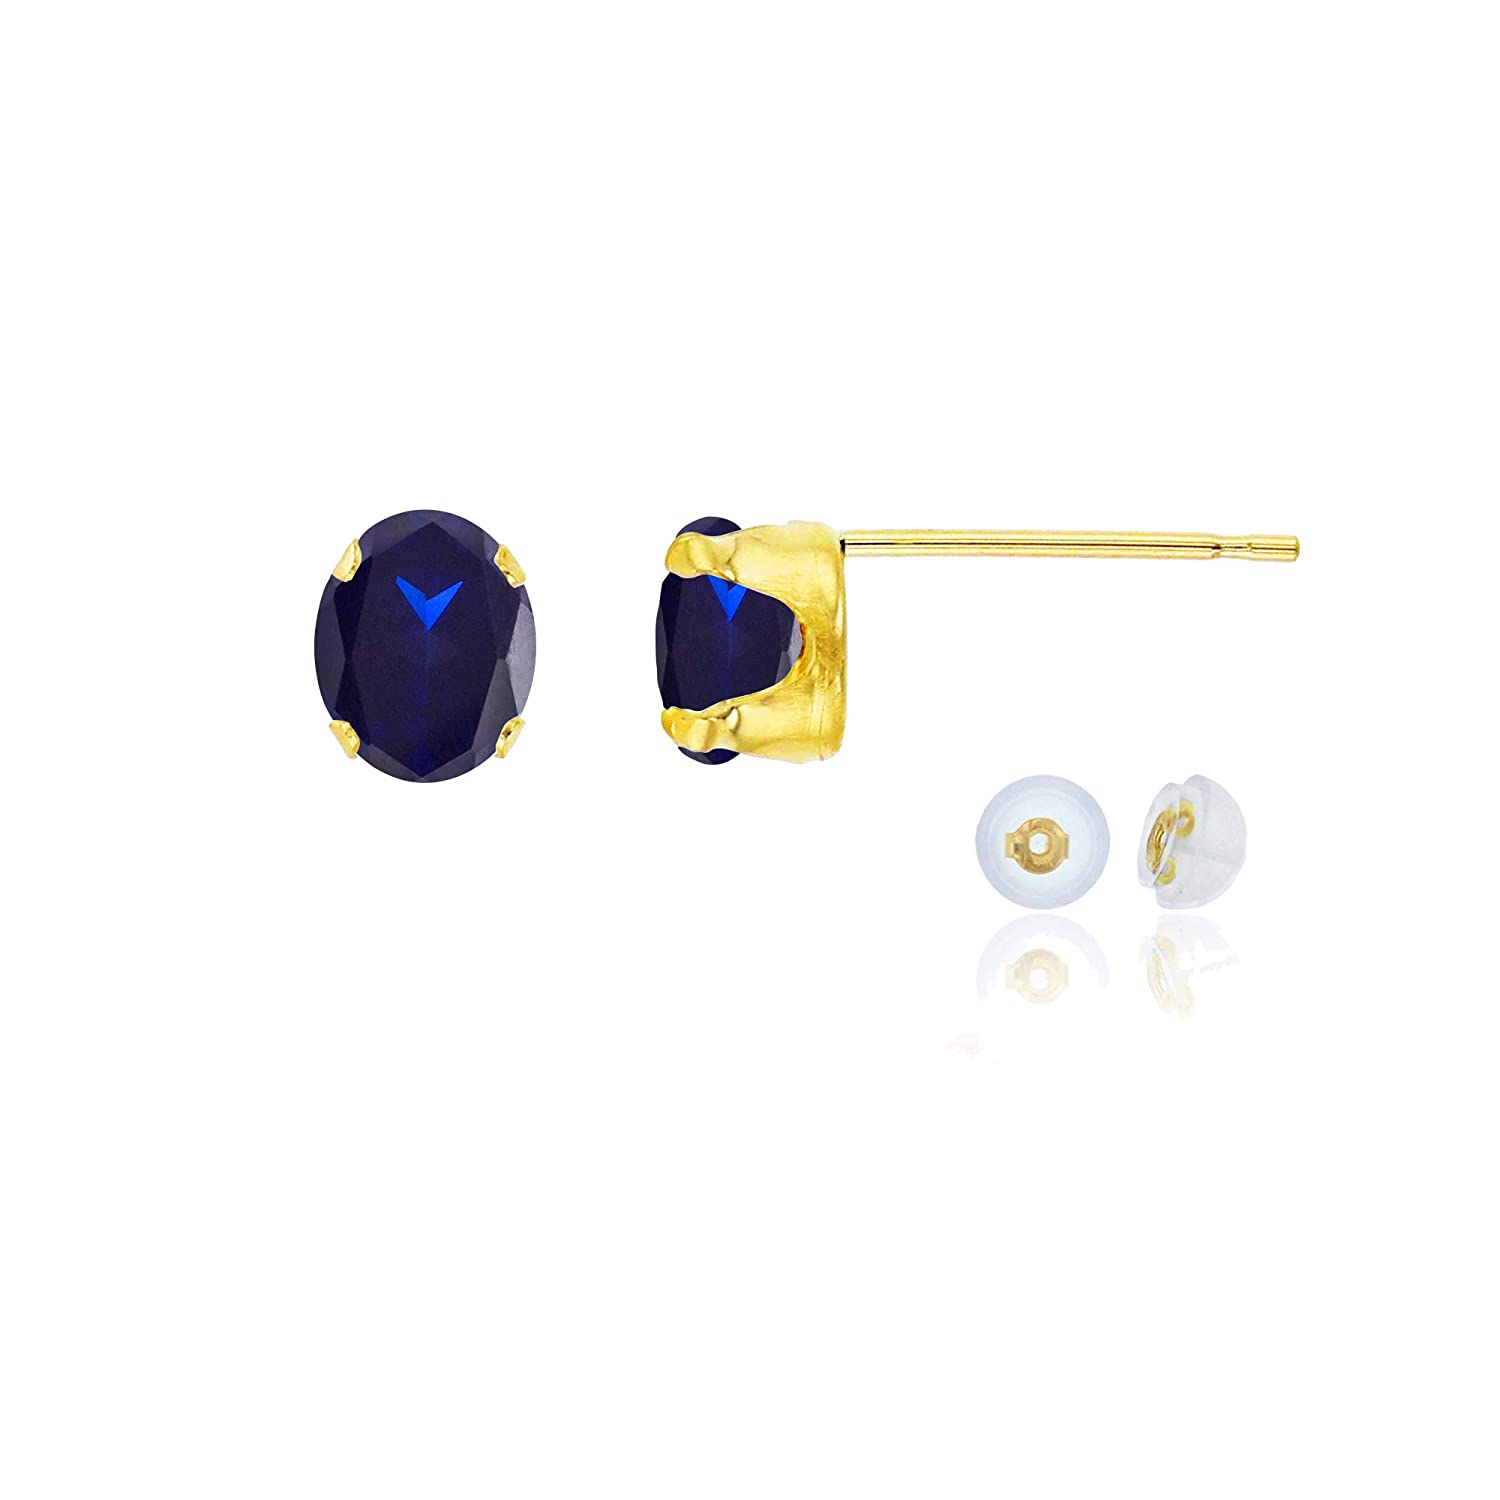 White or Rose Gold 6x4mm Oval Genuine Or Created Gemstone Birthstone Stud Earrings Solid 14K Gold or 14K Gold Plated 925 Sterling Silver Yellow